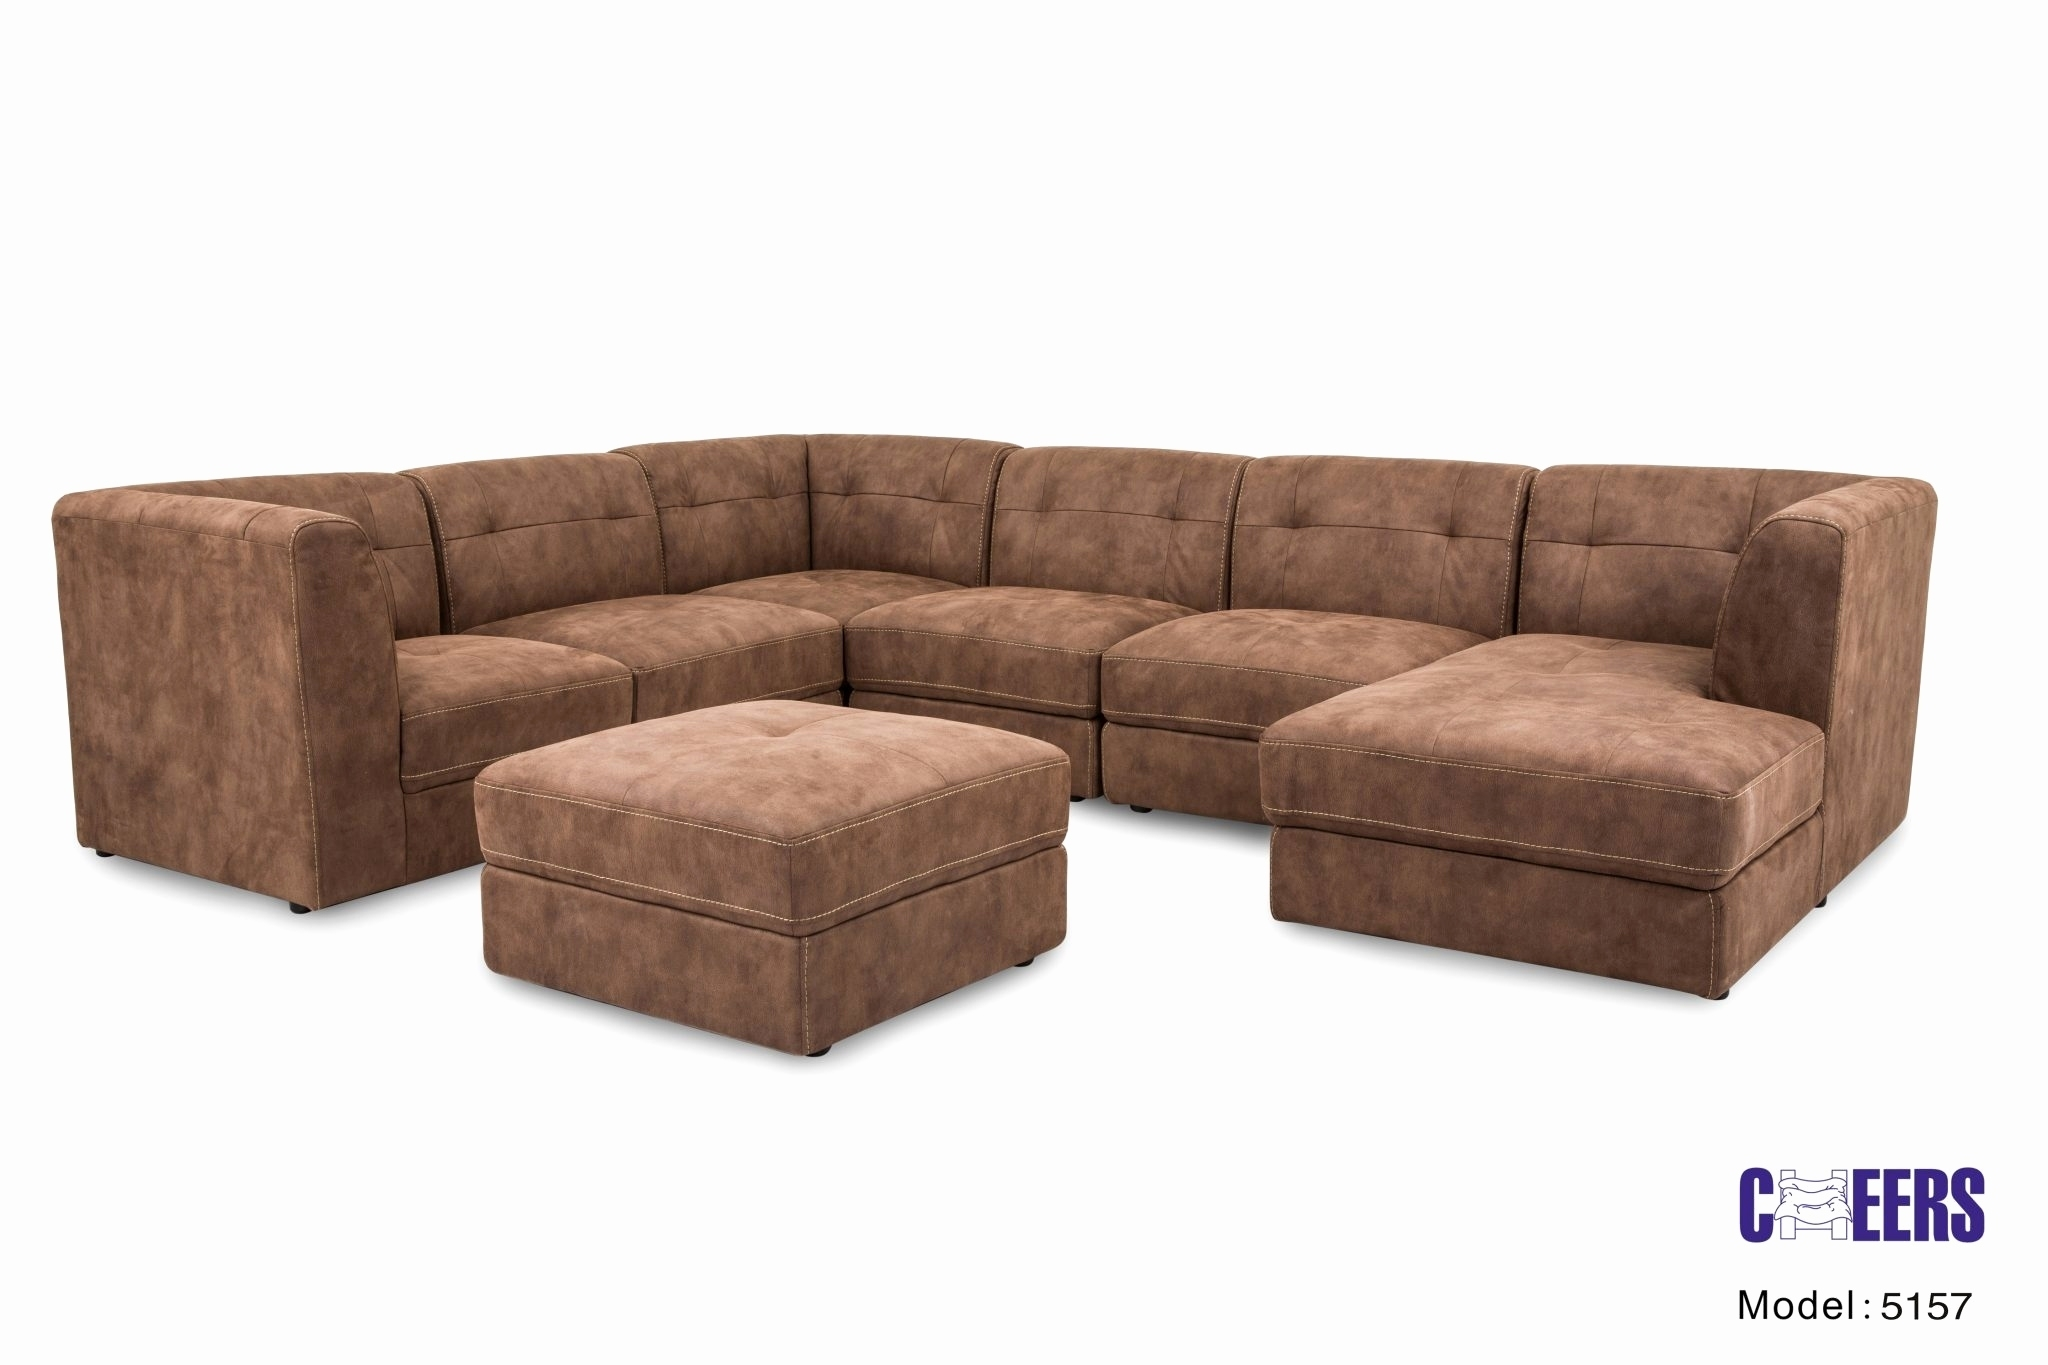 Luxury 6 Piece Sectional Sofa 2018 – Couches Ideas Inside Sam Levitz Sectional Sofas (Image 8 of 10)